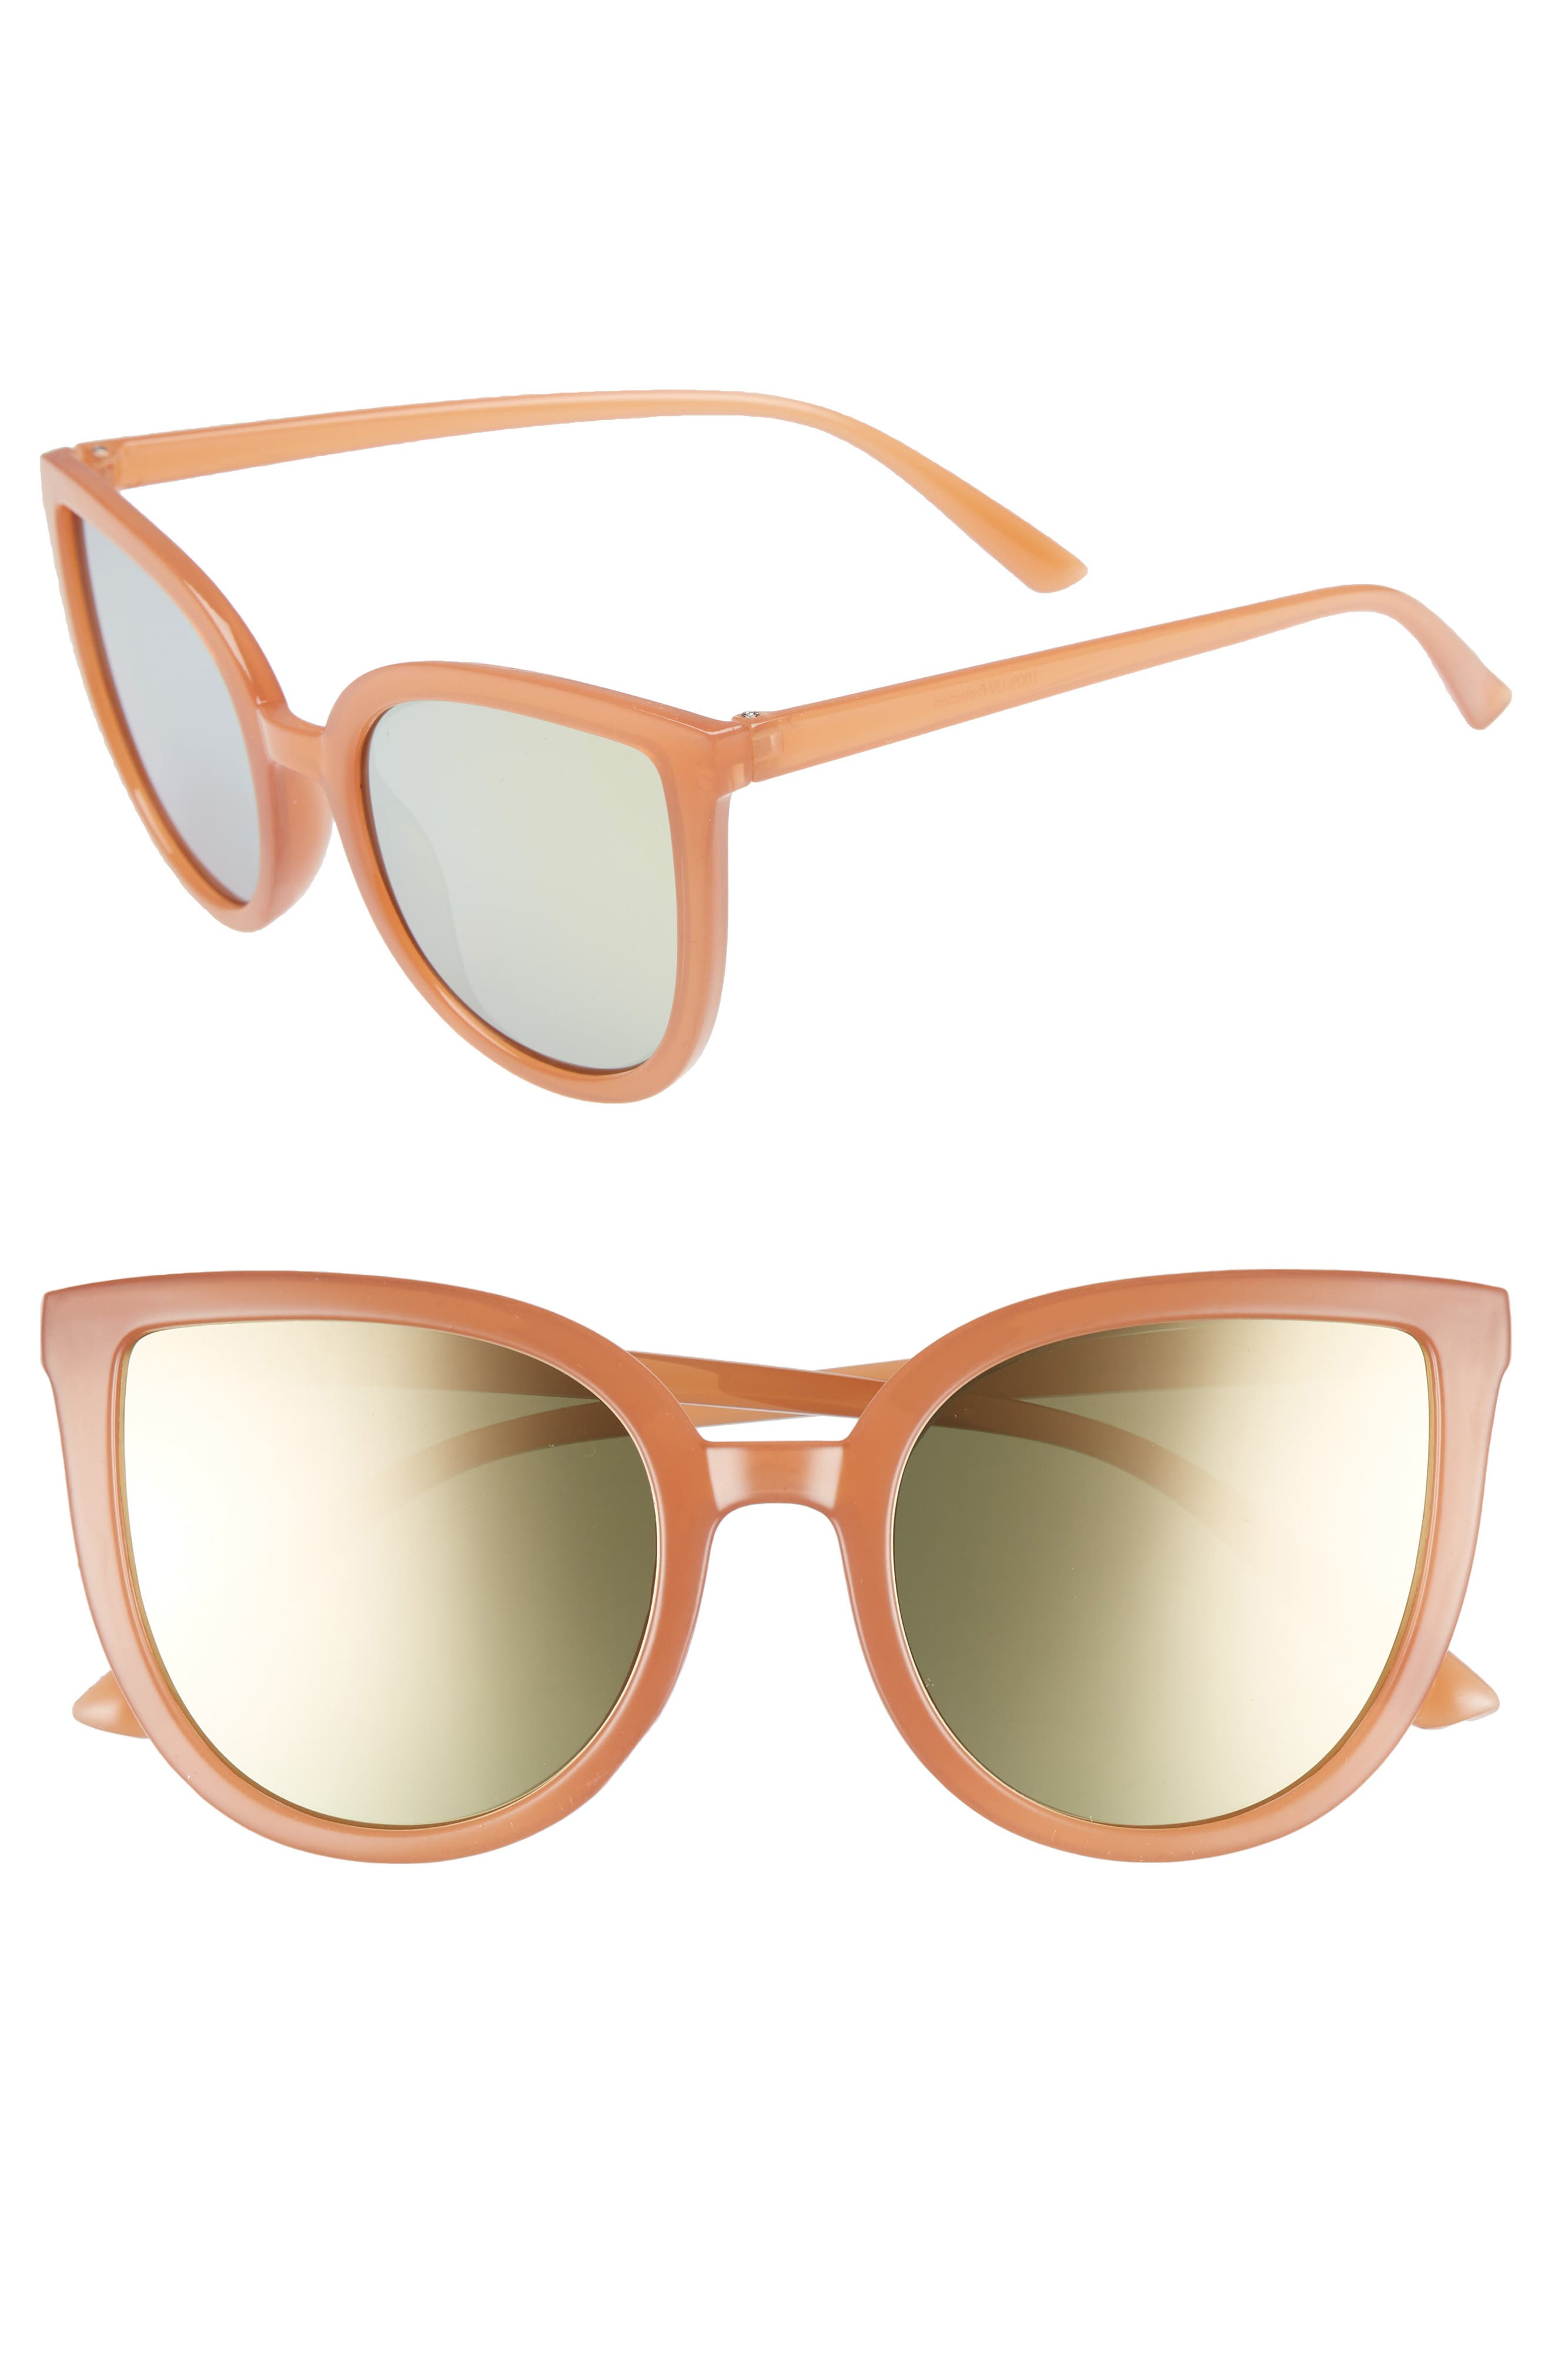 Thin Cat Eye Sunglasses,                         Main,                         color, MILKY PEACH/ GOLD